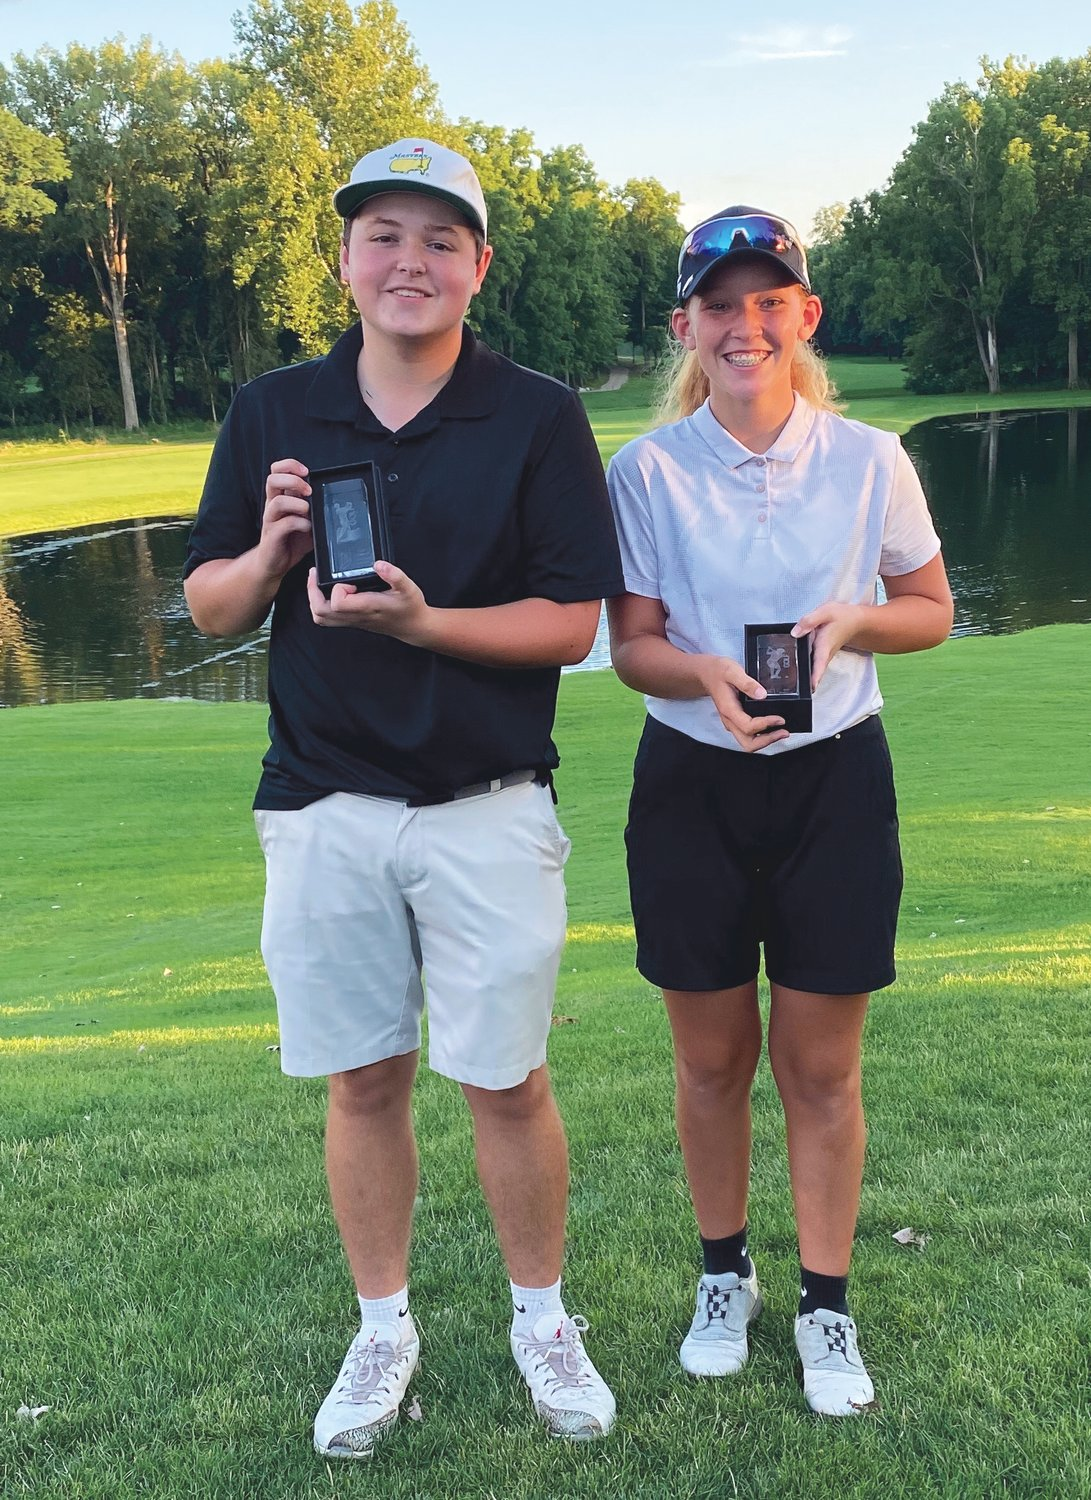 Nolan Allen, left and Addison Meadows, right, won their respective Central Indiana Junior Golf Association Invitational tournaments at Coyote Crossing Golf Course in Lafayette. .Allen, a 15-year-old, won the 15-18 year old tournament, while Meadows, age 13, won the 13-14 age group. Both Allen and Meadows attend Southmont Schools.